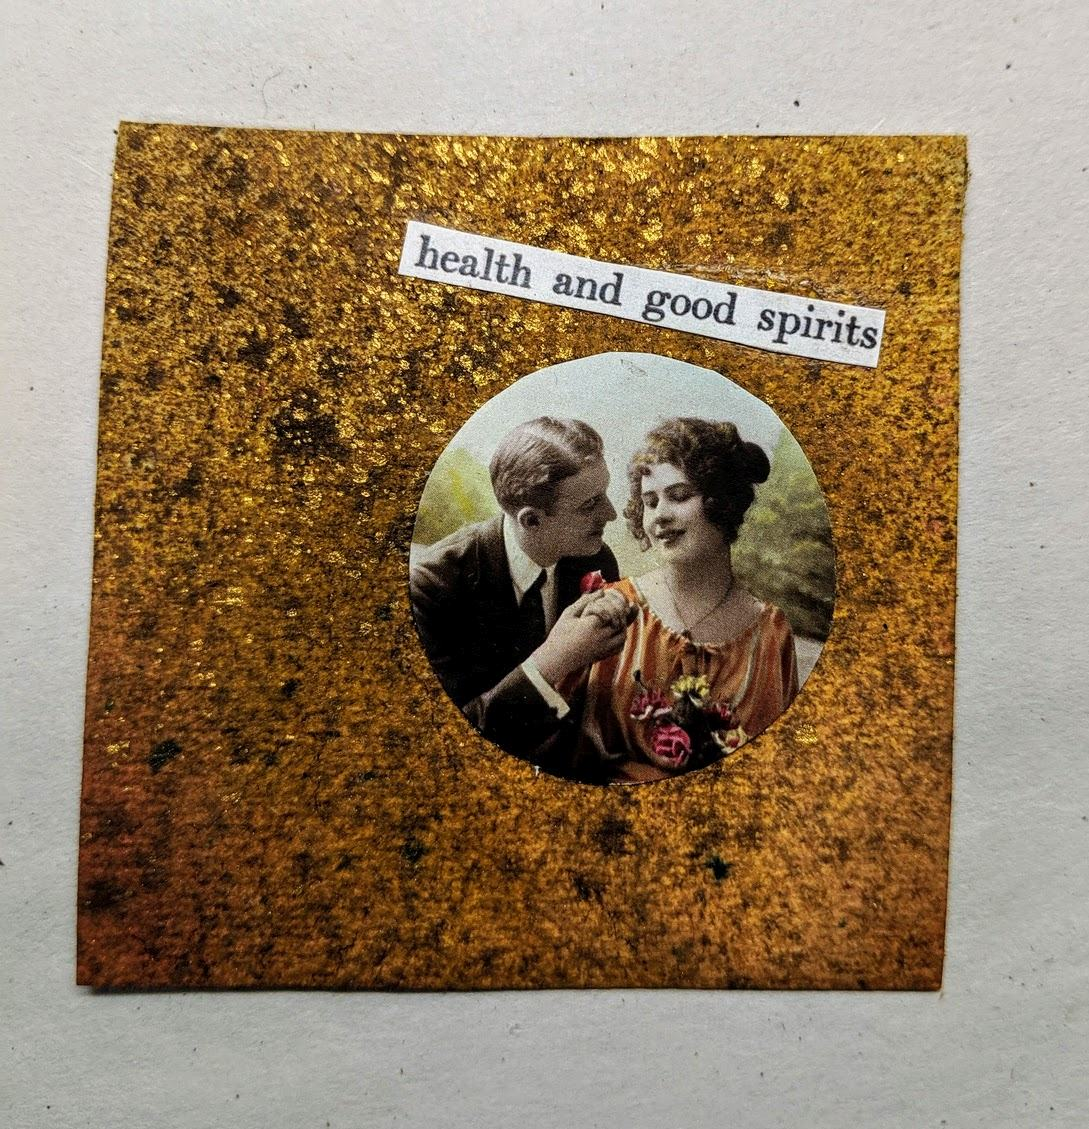 226: 3x3 card with dyes & collage